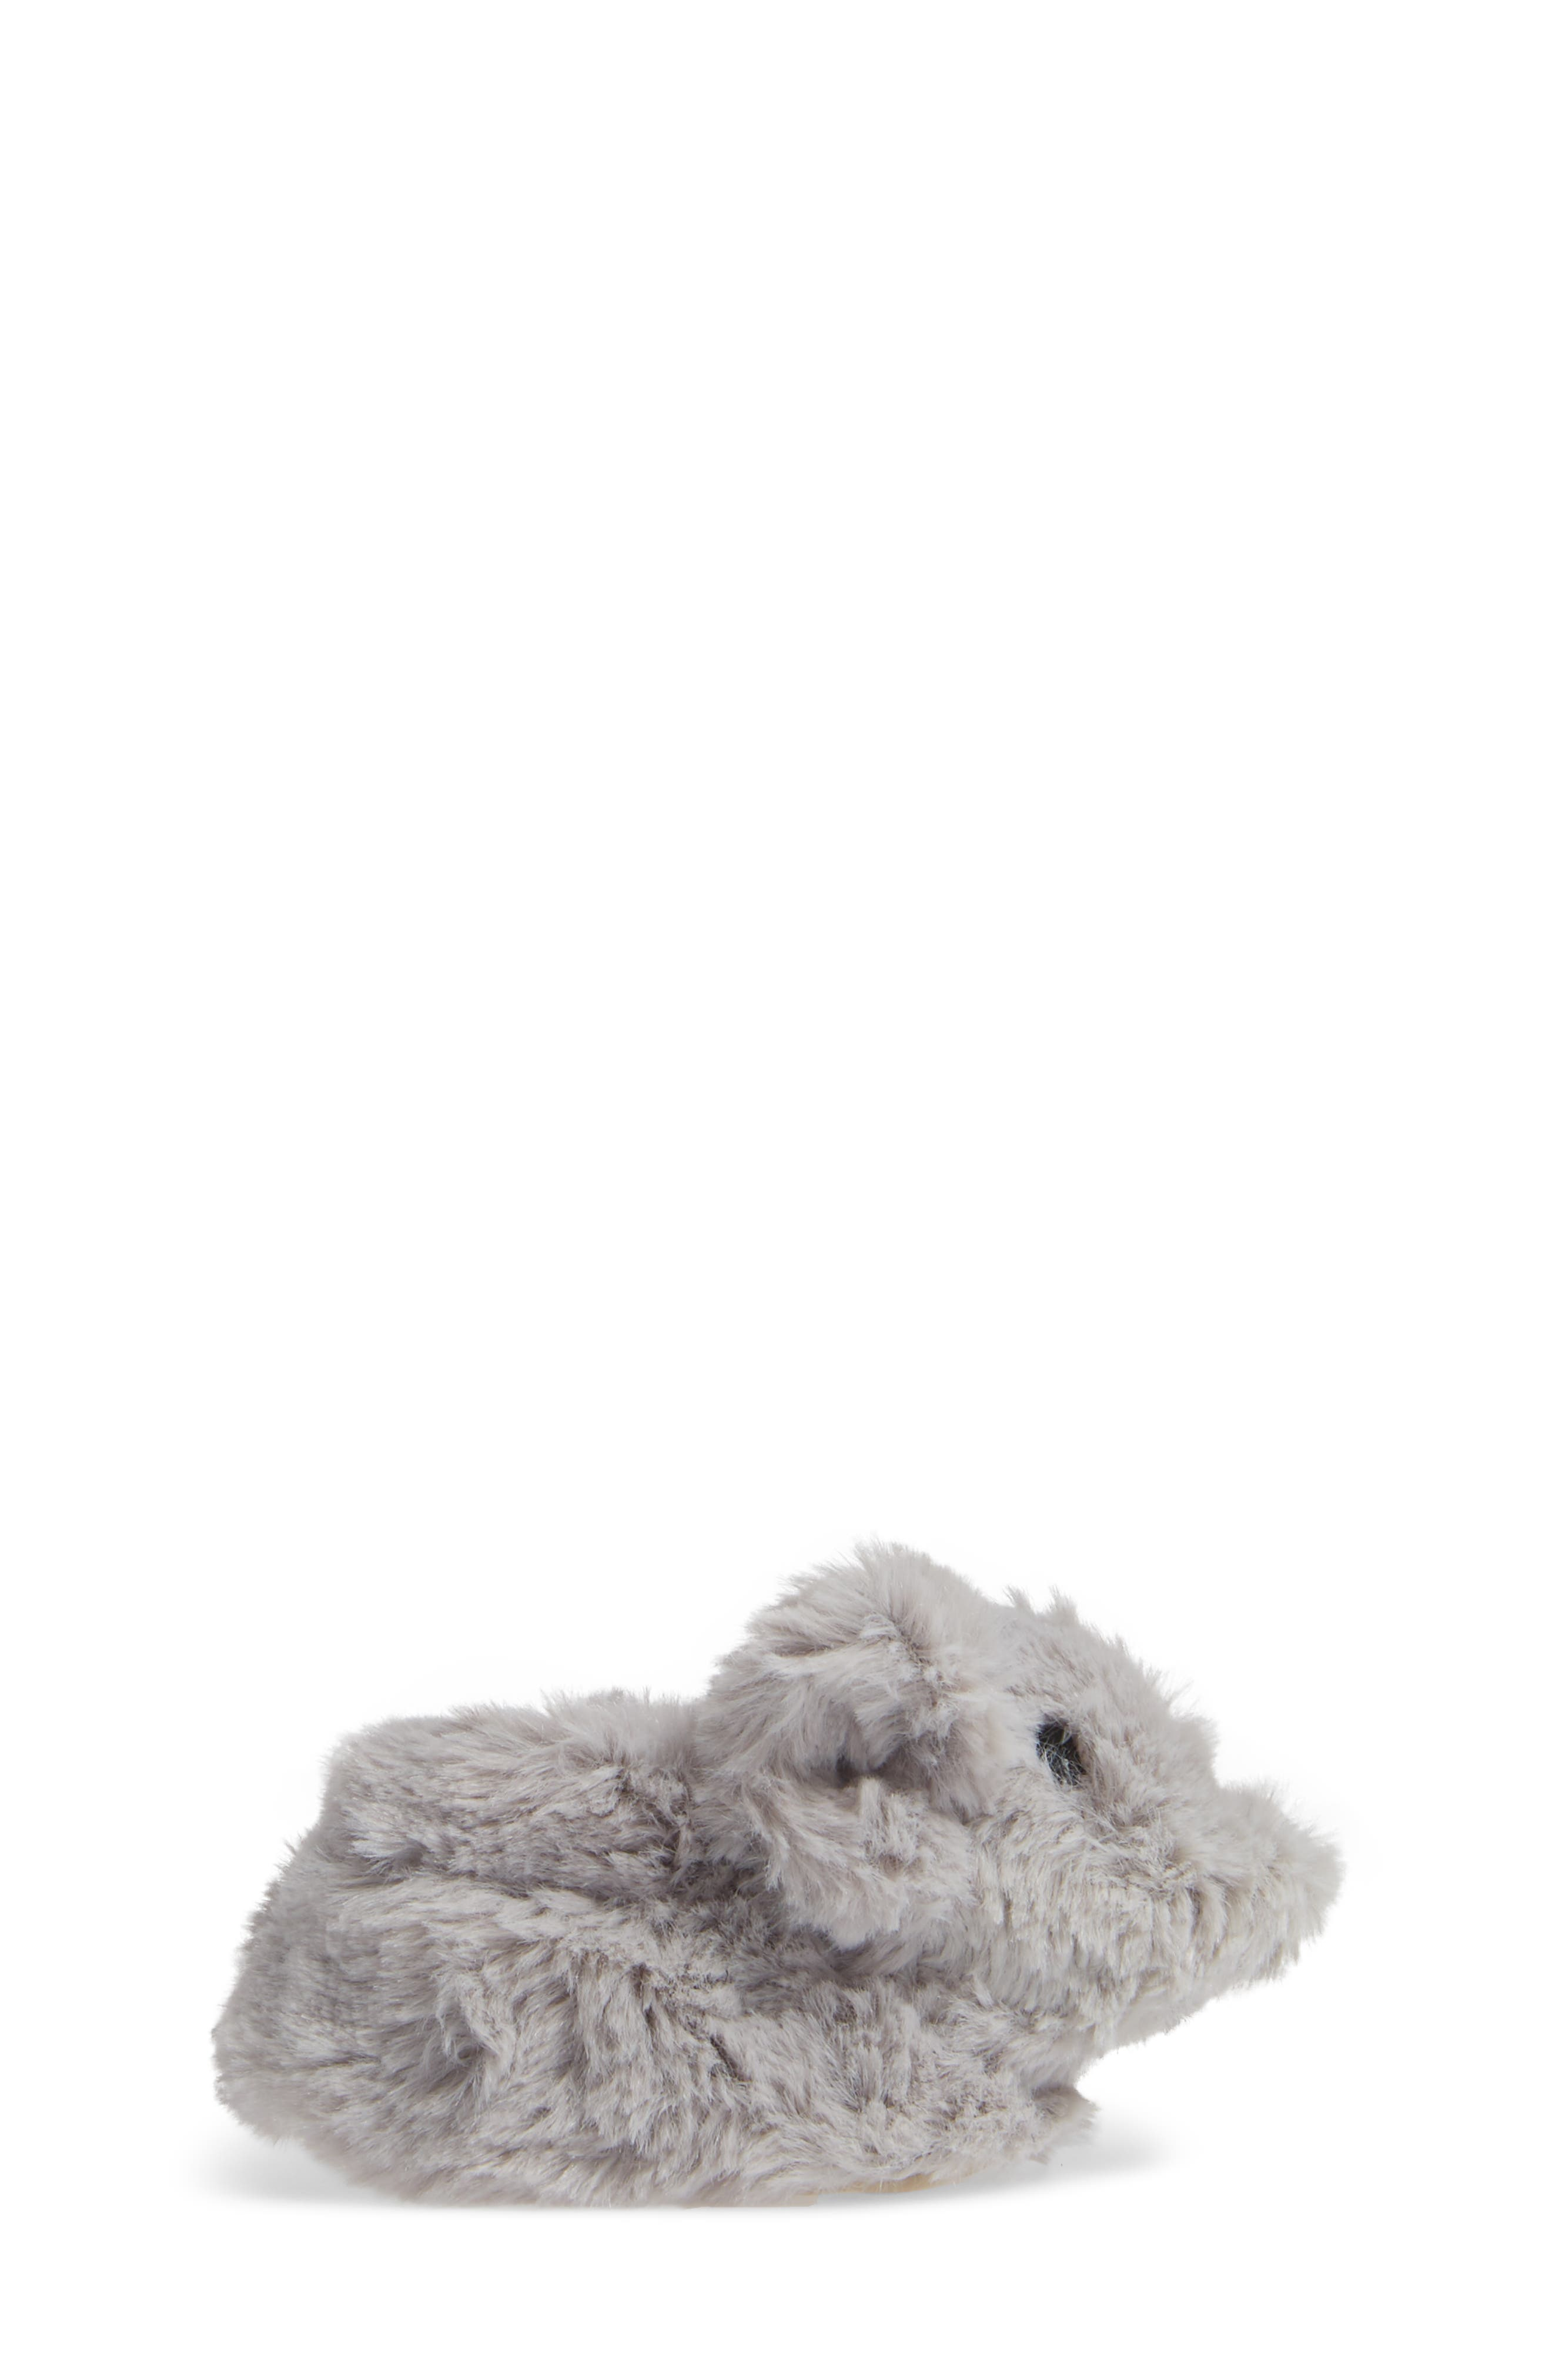 Faux Fur Animal Slipper,                             Alternate thumbnail 3, color,                             GREY ELEPHANT